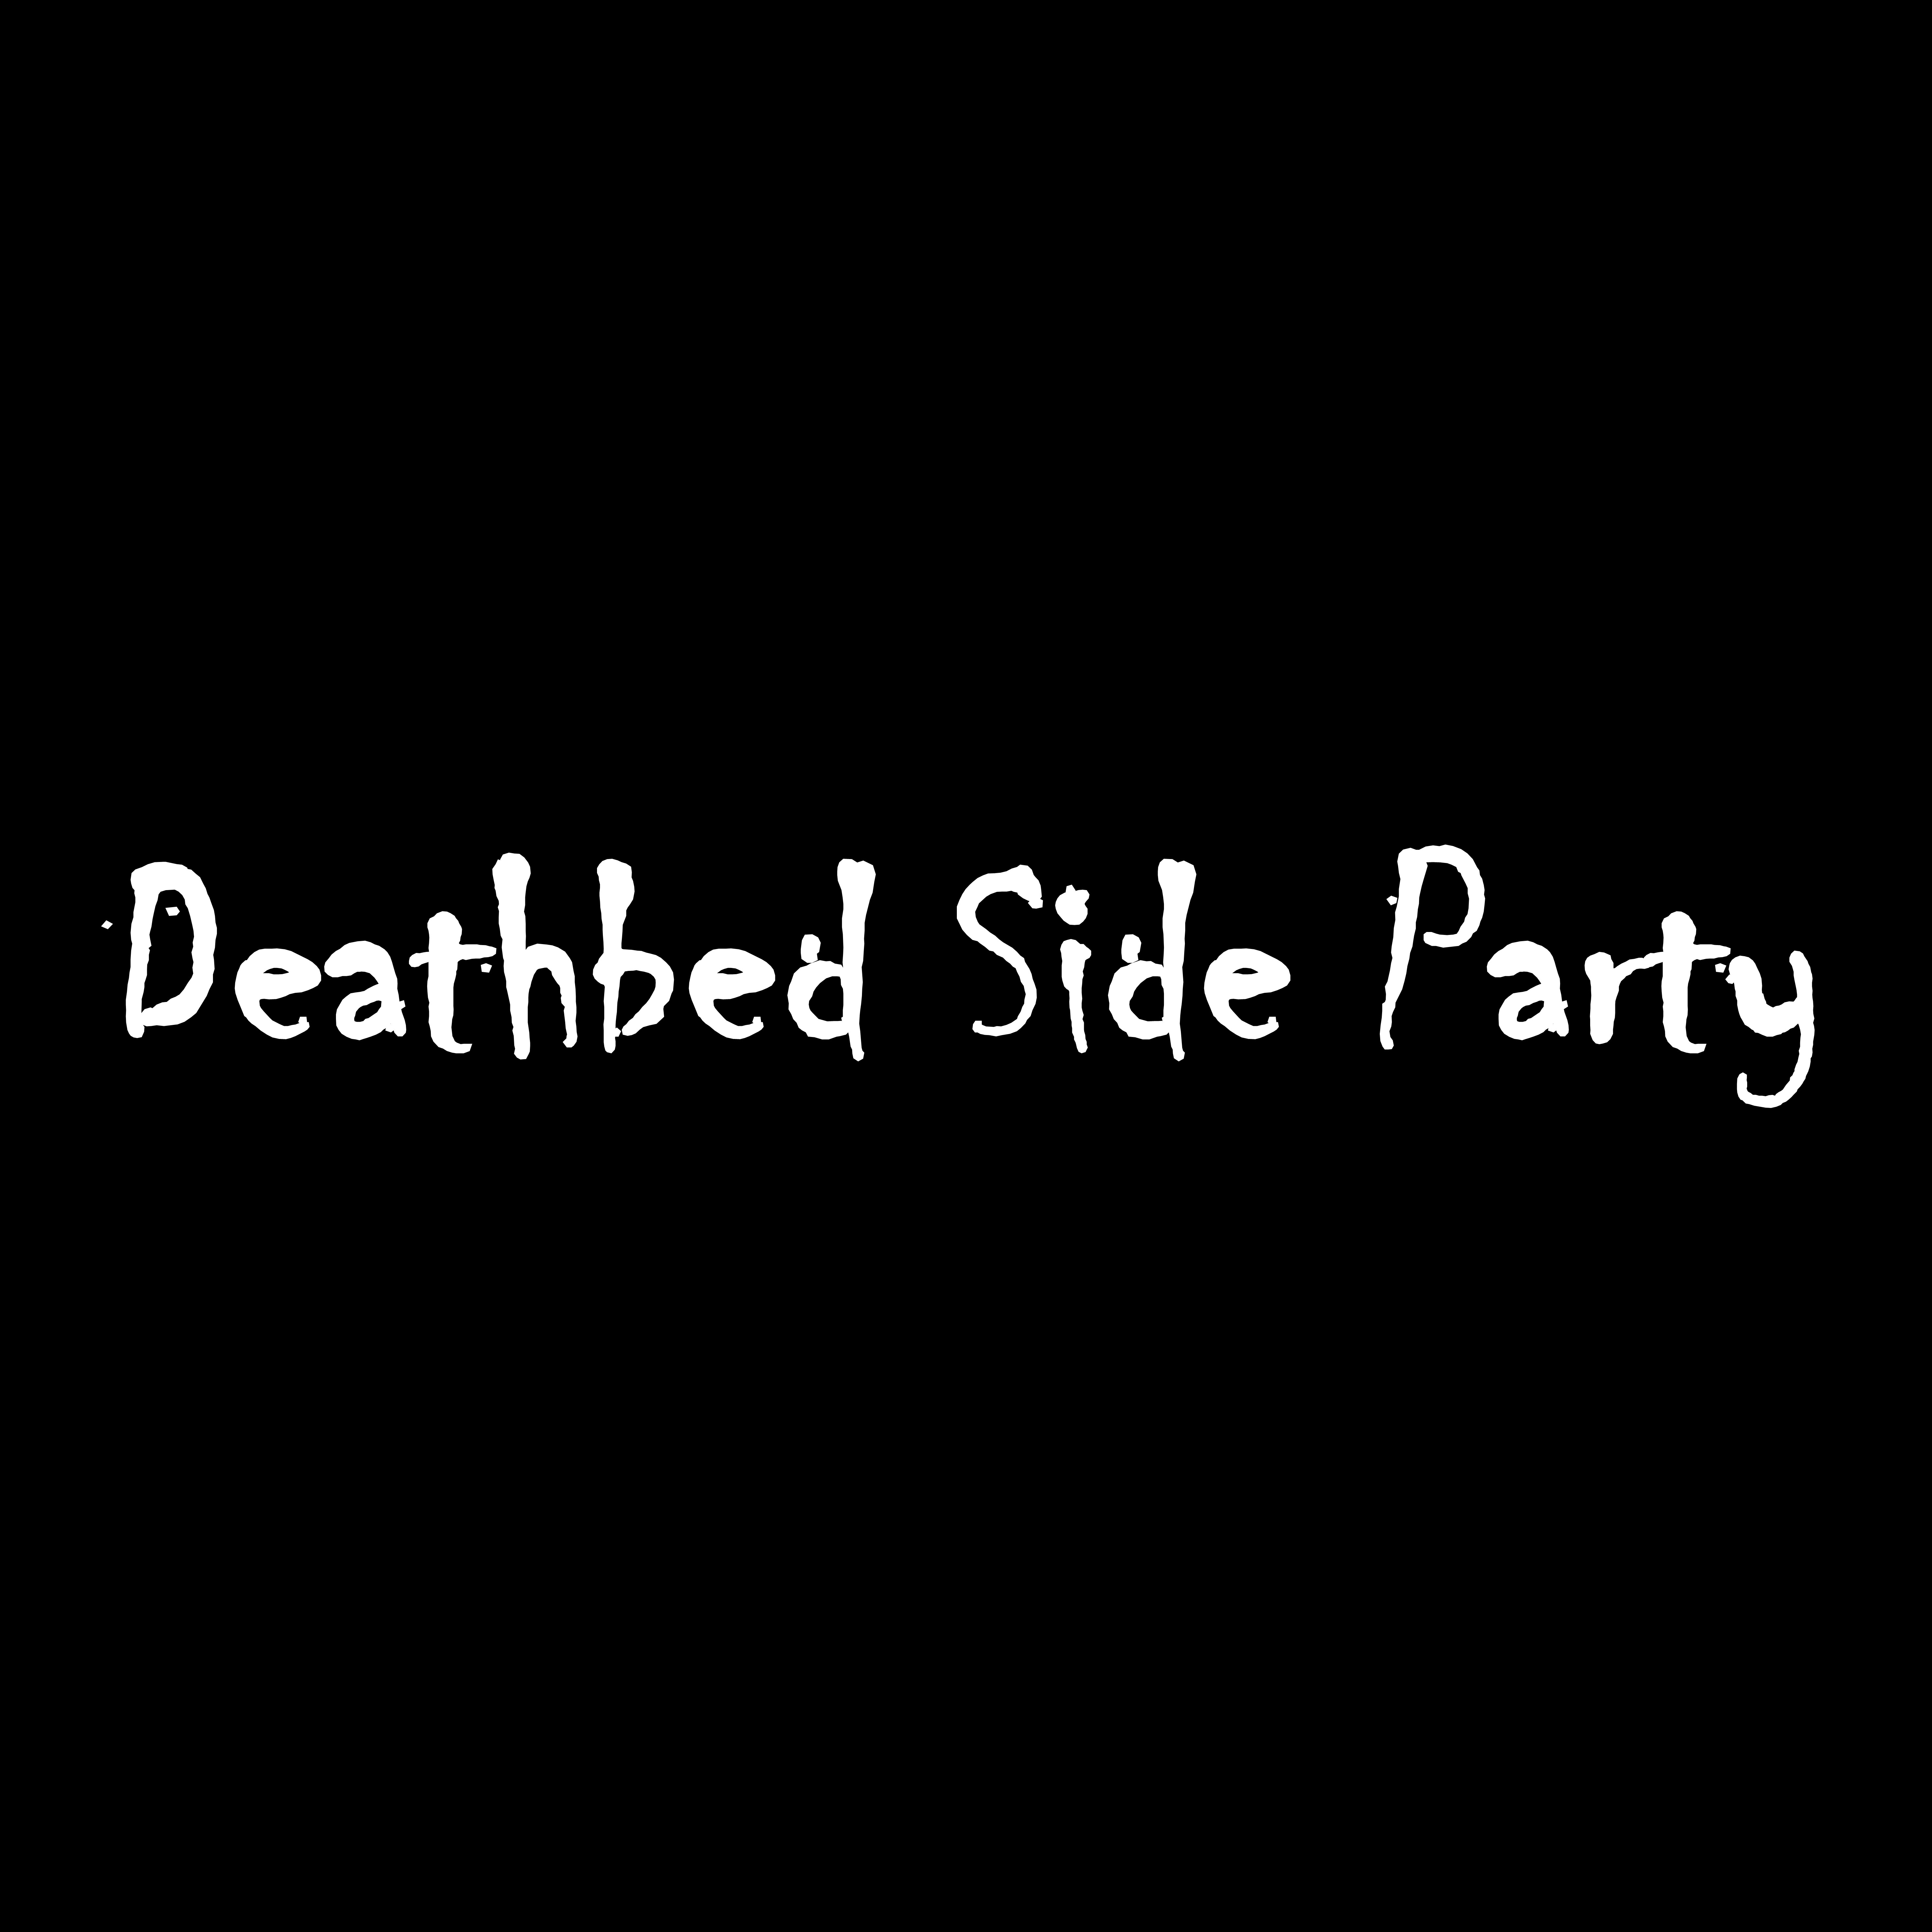 Deathbed Side Party